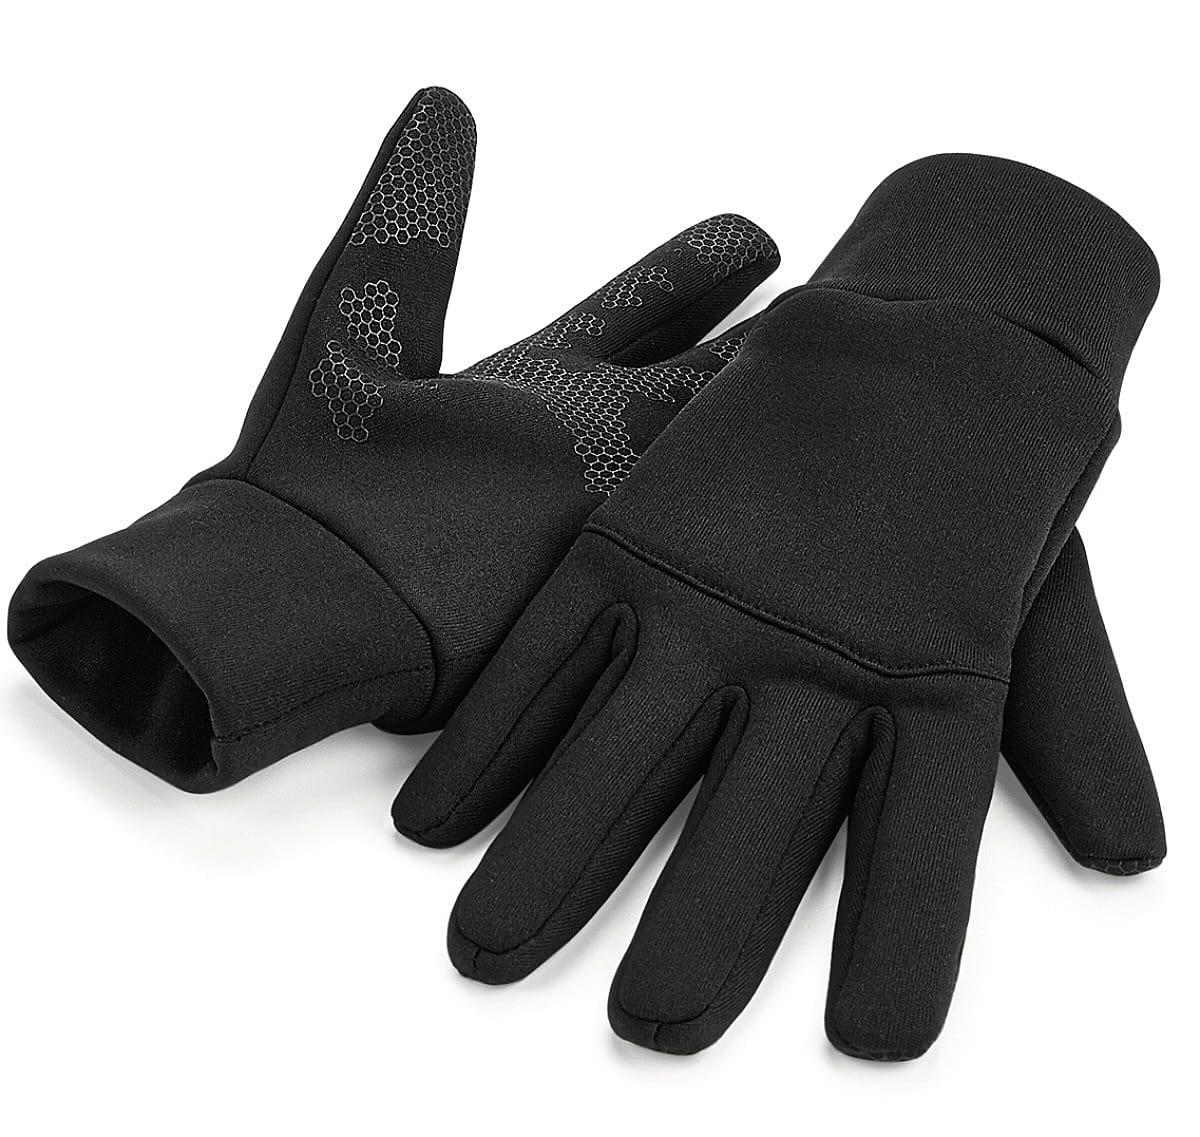 Beechfield Softshell Sports Tech Gloves in Black (Product Code: B310)